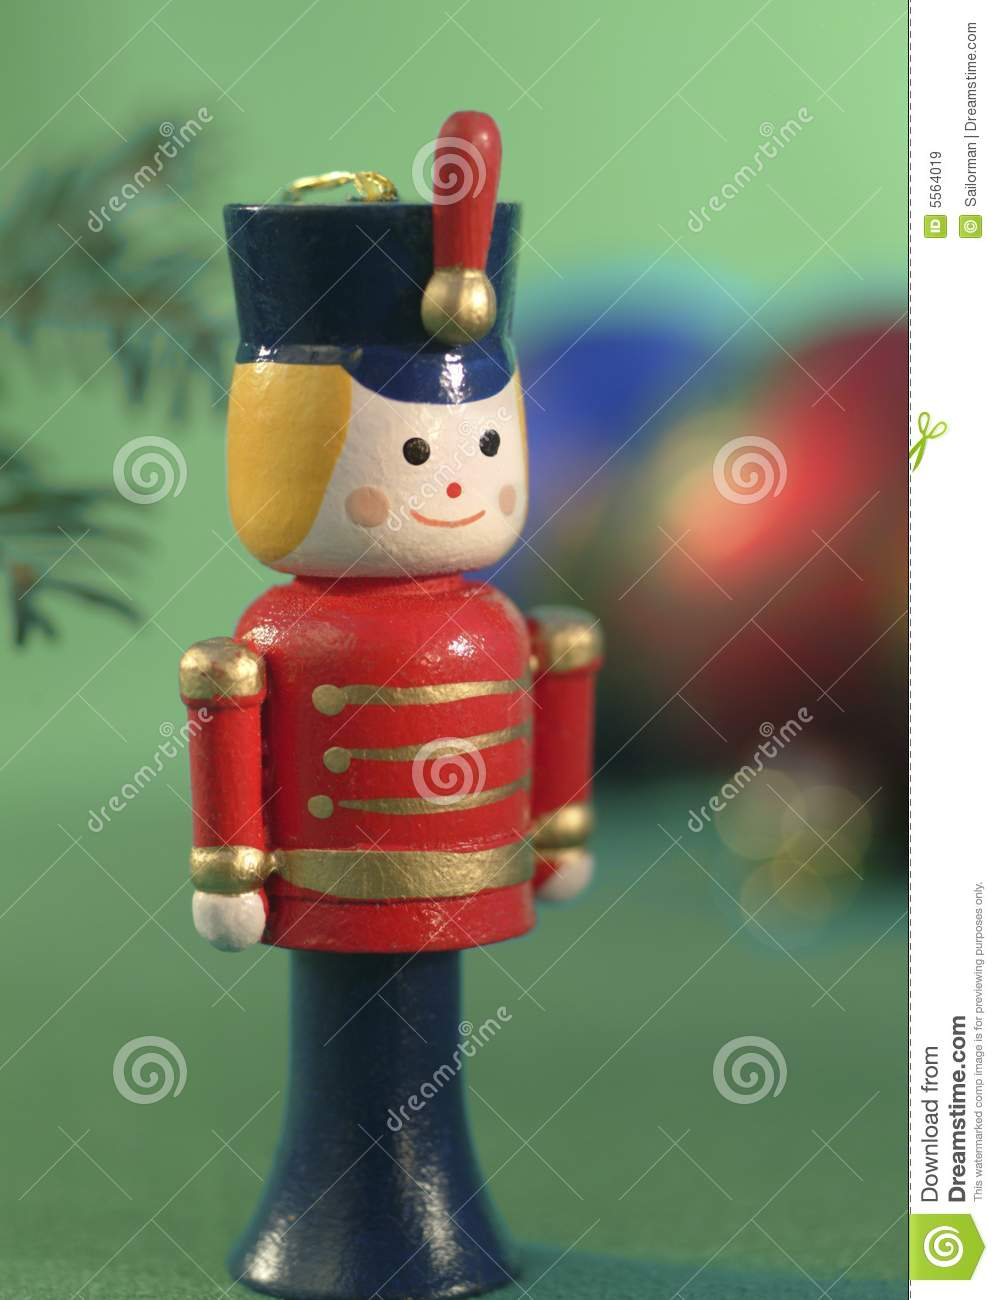 Christmas Toy Soldier Toy soldier christmas ornament